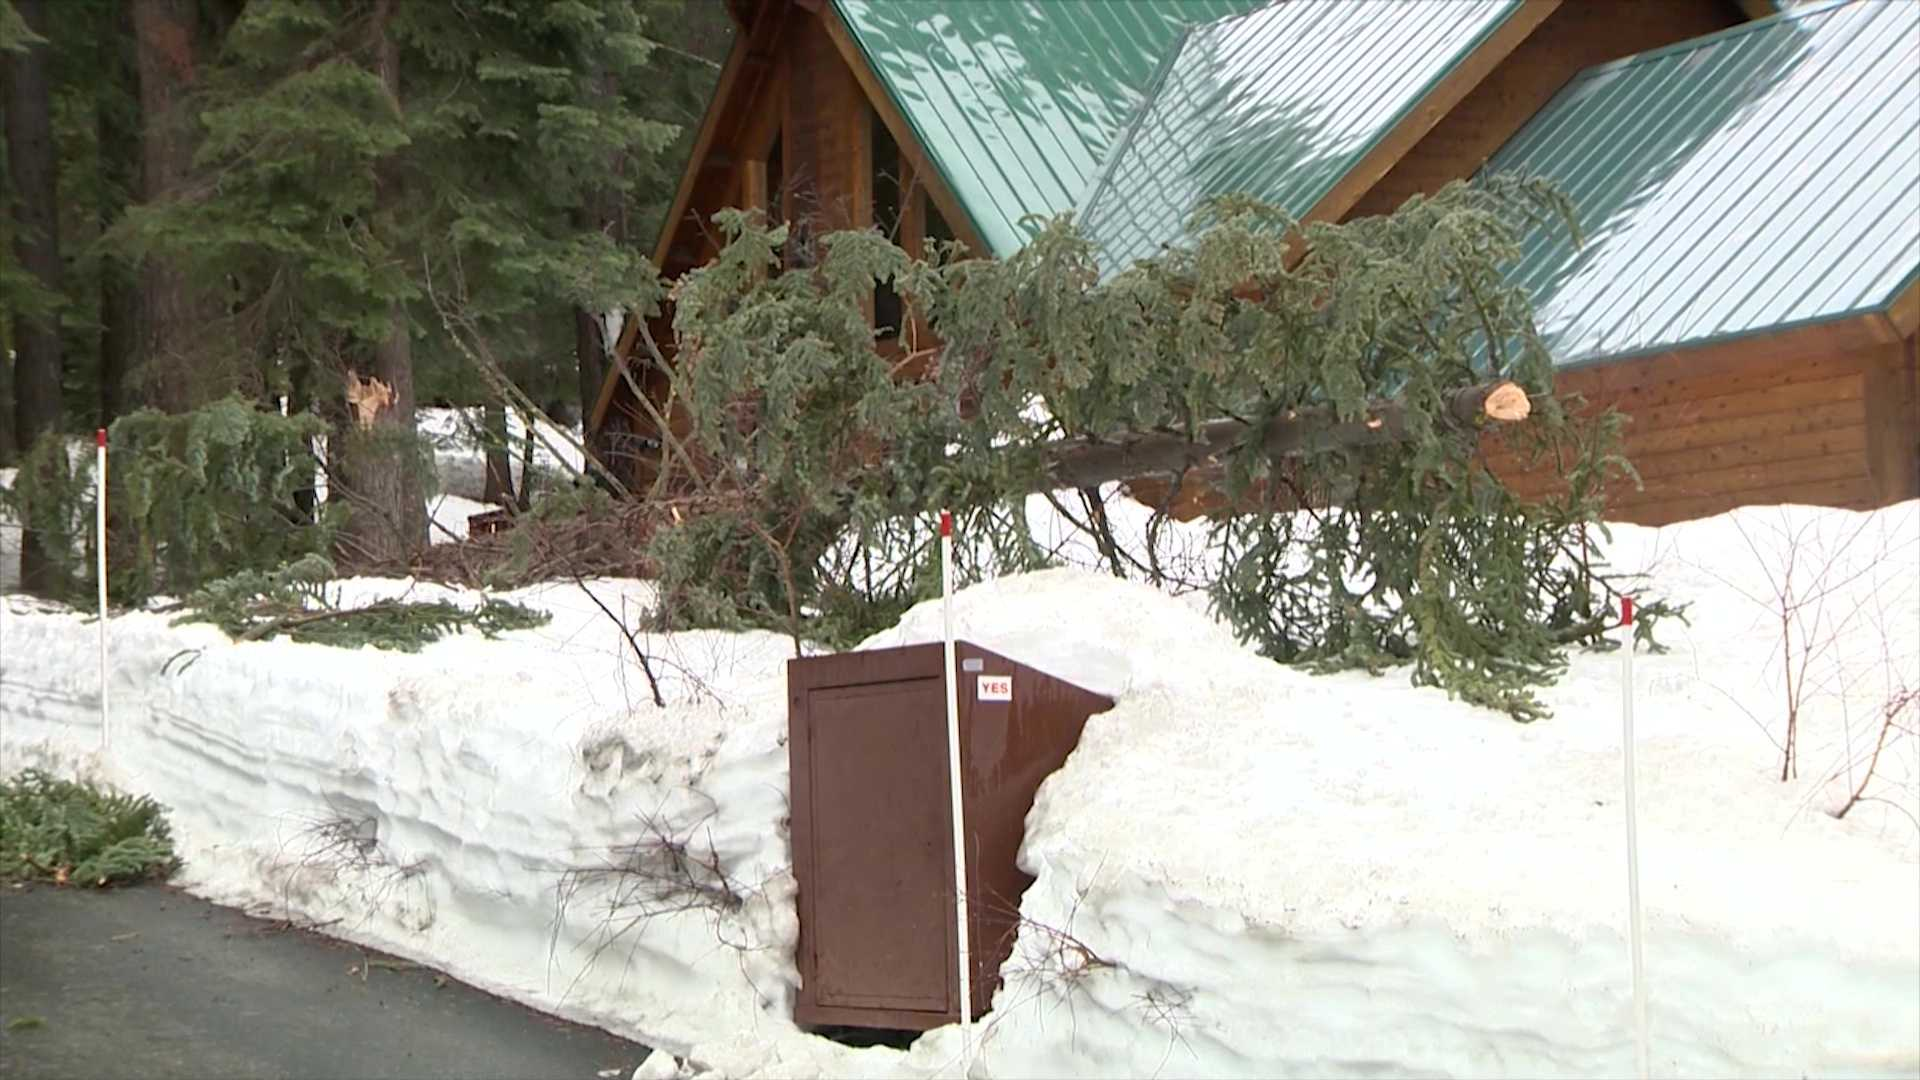 This tree fell over and onto a Jeep Wednesday, Feb. 17, 2016, in Truckee due to strong winds.